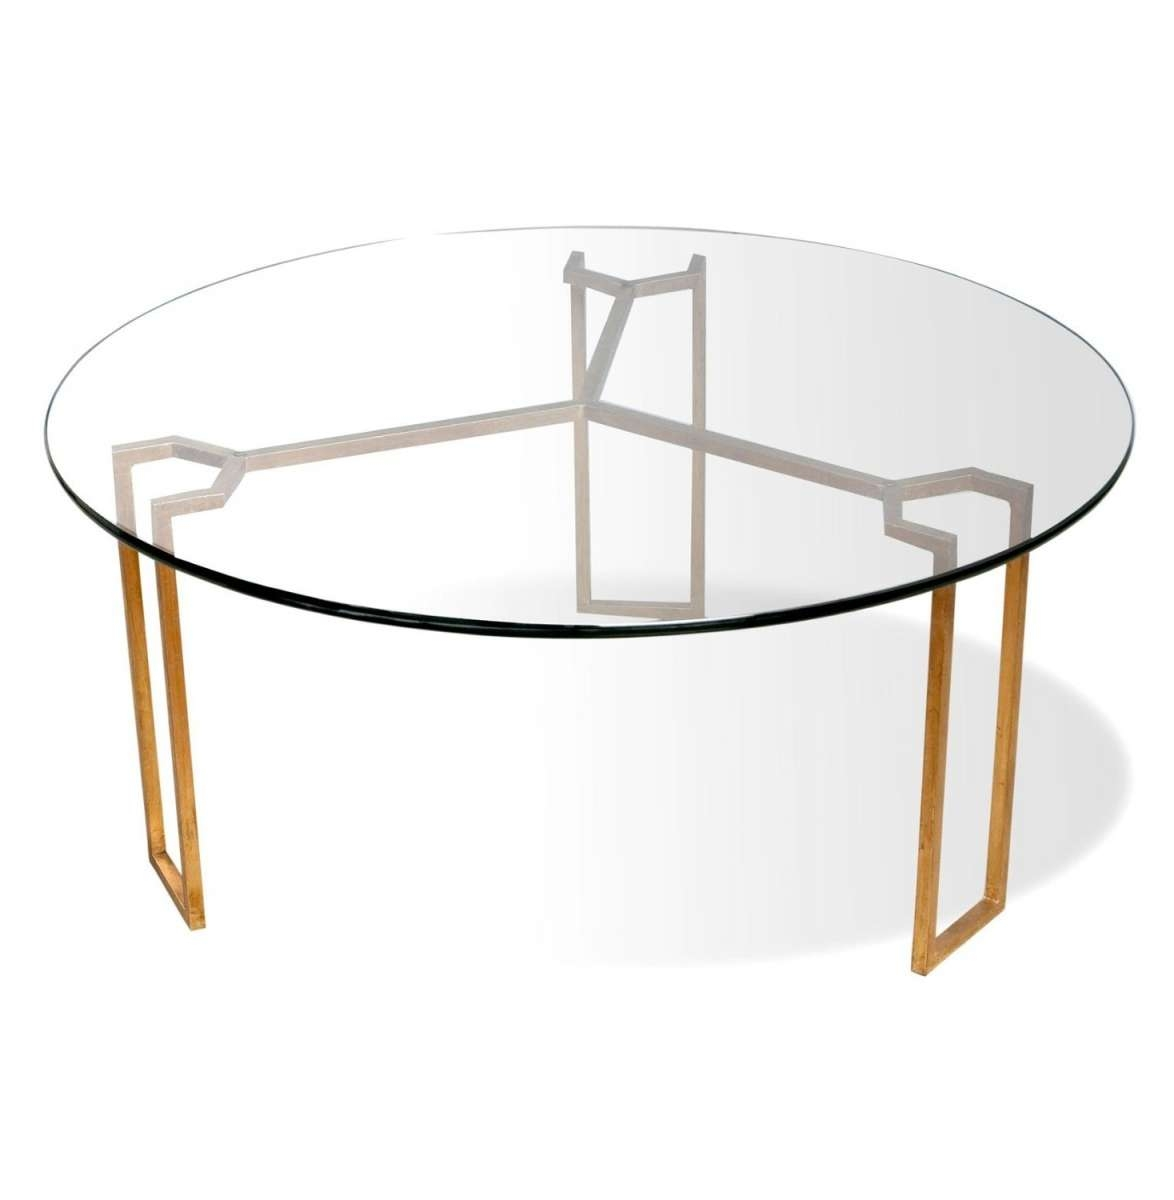 Furniture: Glass Contemporary Round Coffee Tables With Gold Metal Inside Best And Newest Glass Circle Coffee Tables (View 4 of 20)